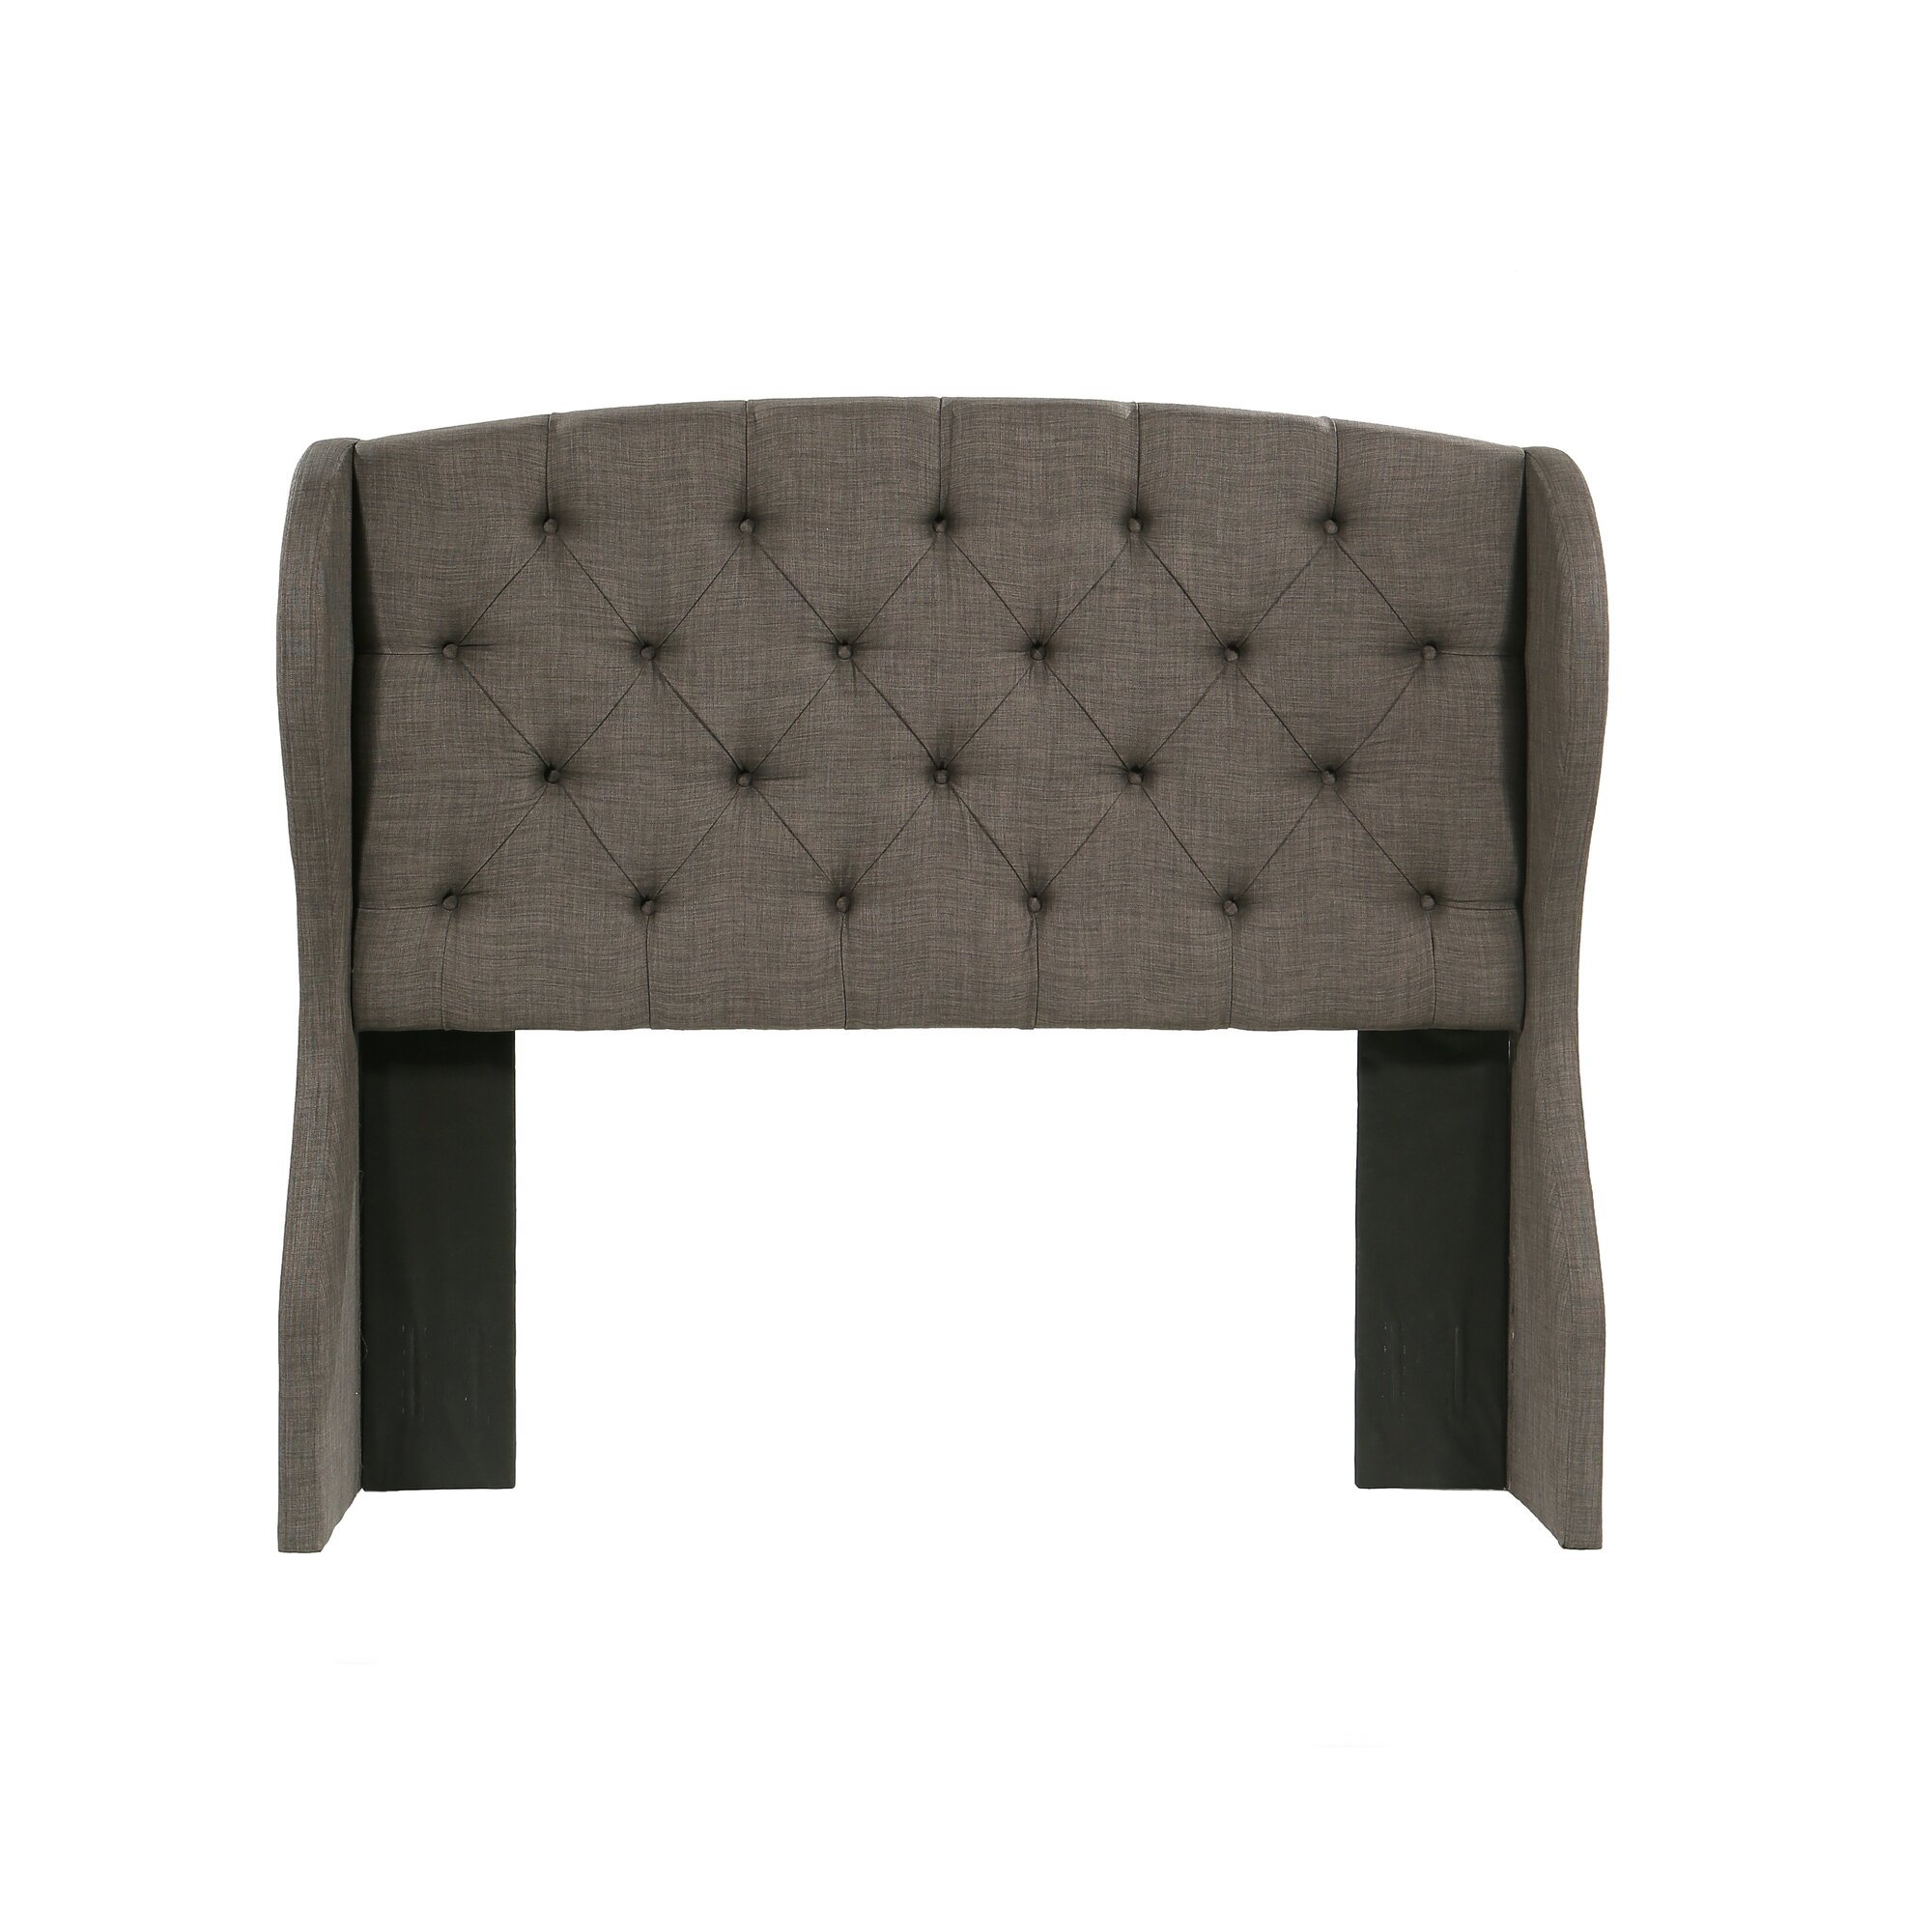 republicdesignhouse peyton upholstered wingback headboard, Headboard designs